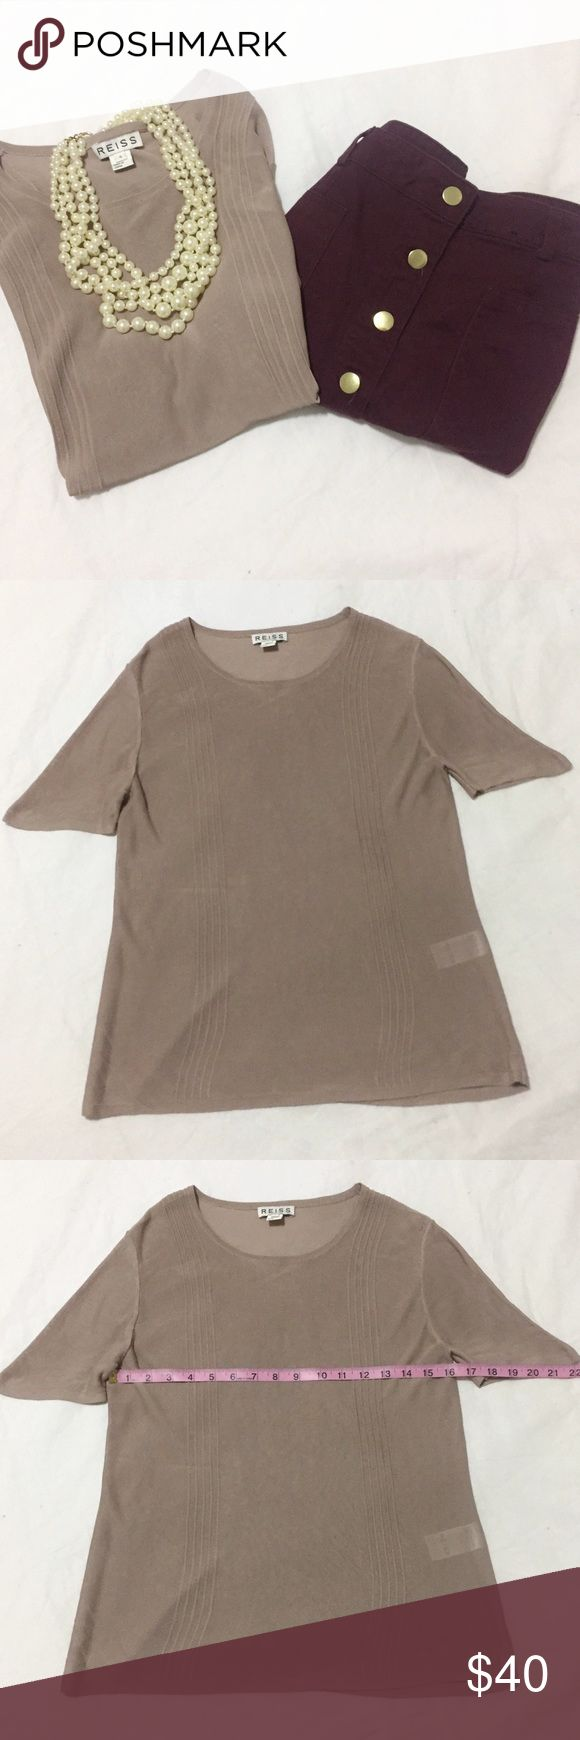 Reiss | Beige Sheer Short Sleeve Shirt | Size: S Reiss | Beige Sheer Short Sleeve Shirt | Size: Small | Great Condition | True to Size | No Wear or Damage | Pet/Smoke Free Home | See Photos for Measurements Reiss Tops Blouses